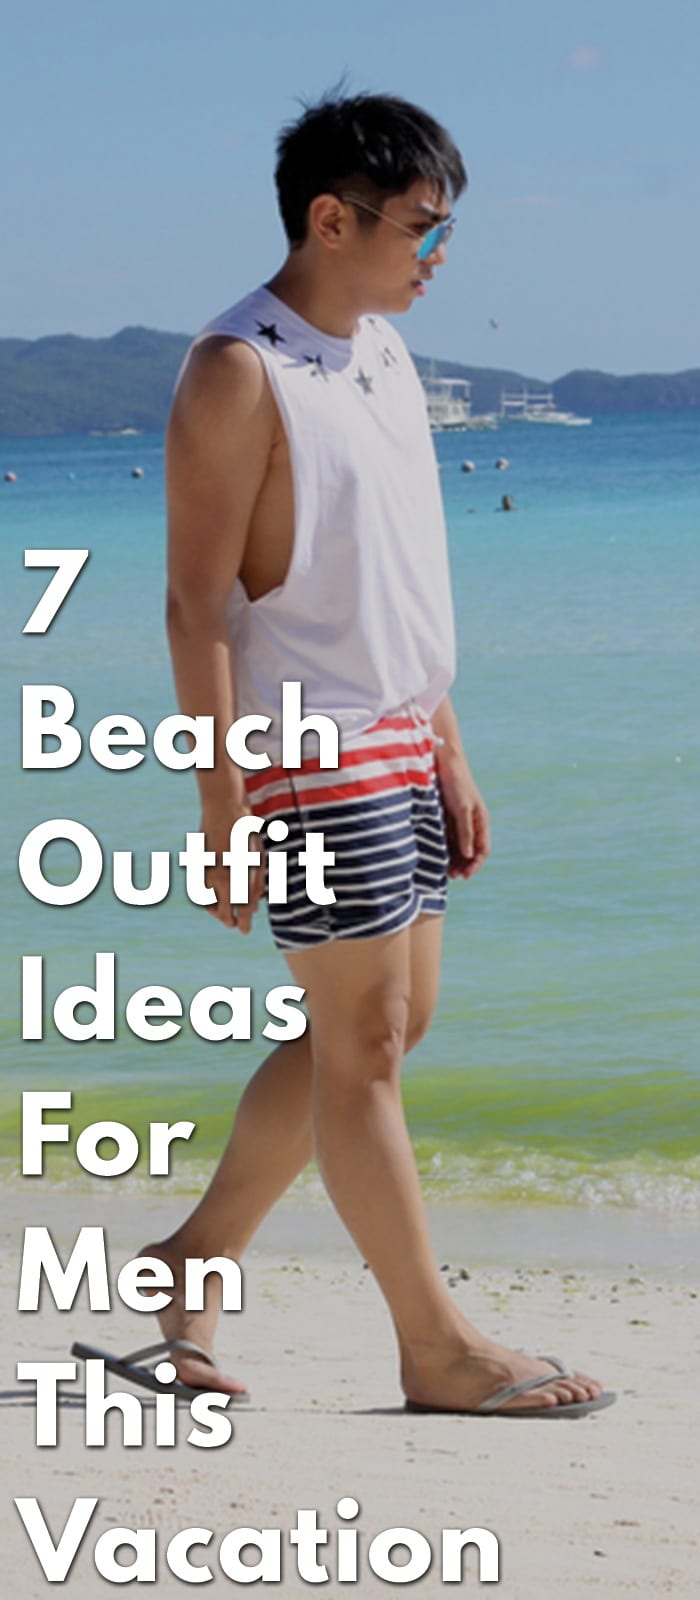 21c09ddfa7 7-Beach-Outfit-Ideas-For-Men-This-Vacation. ⋆ Best Fashion Blog For ...